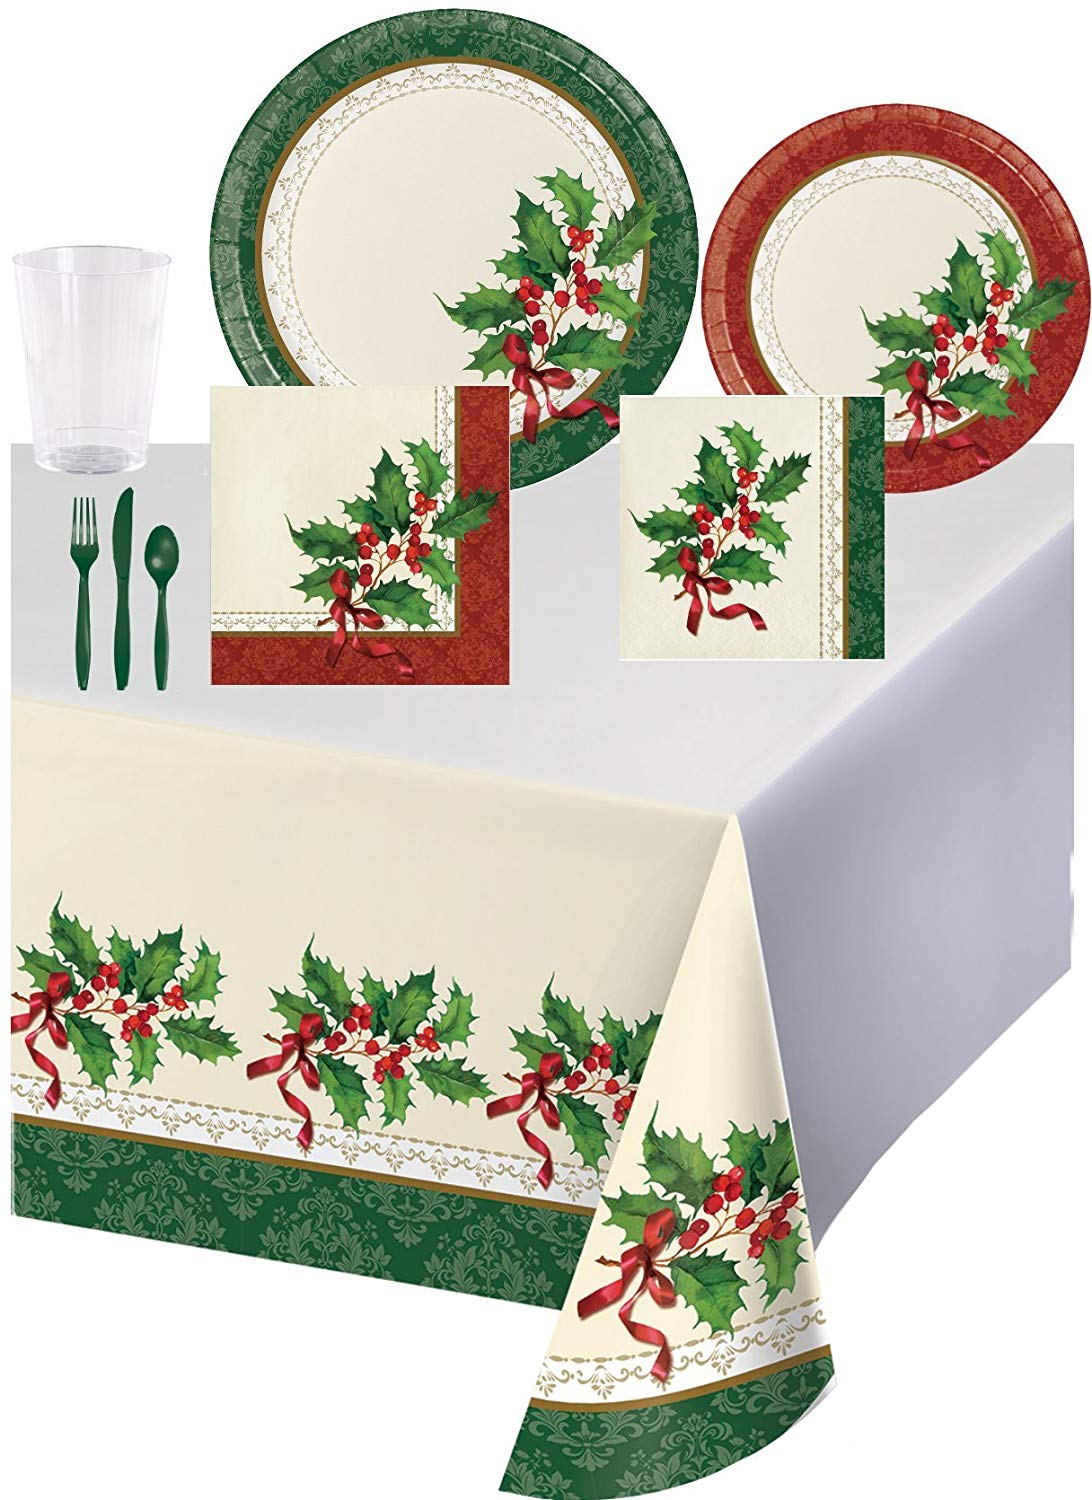 Christmas Holly Dinnerware Set in Holiday Taditions Design for 8 Guests - Bundle Includes Plates, Napkins, Cups, Cutlery, and a Tablecover